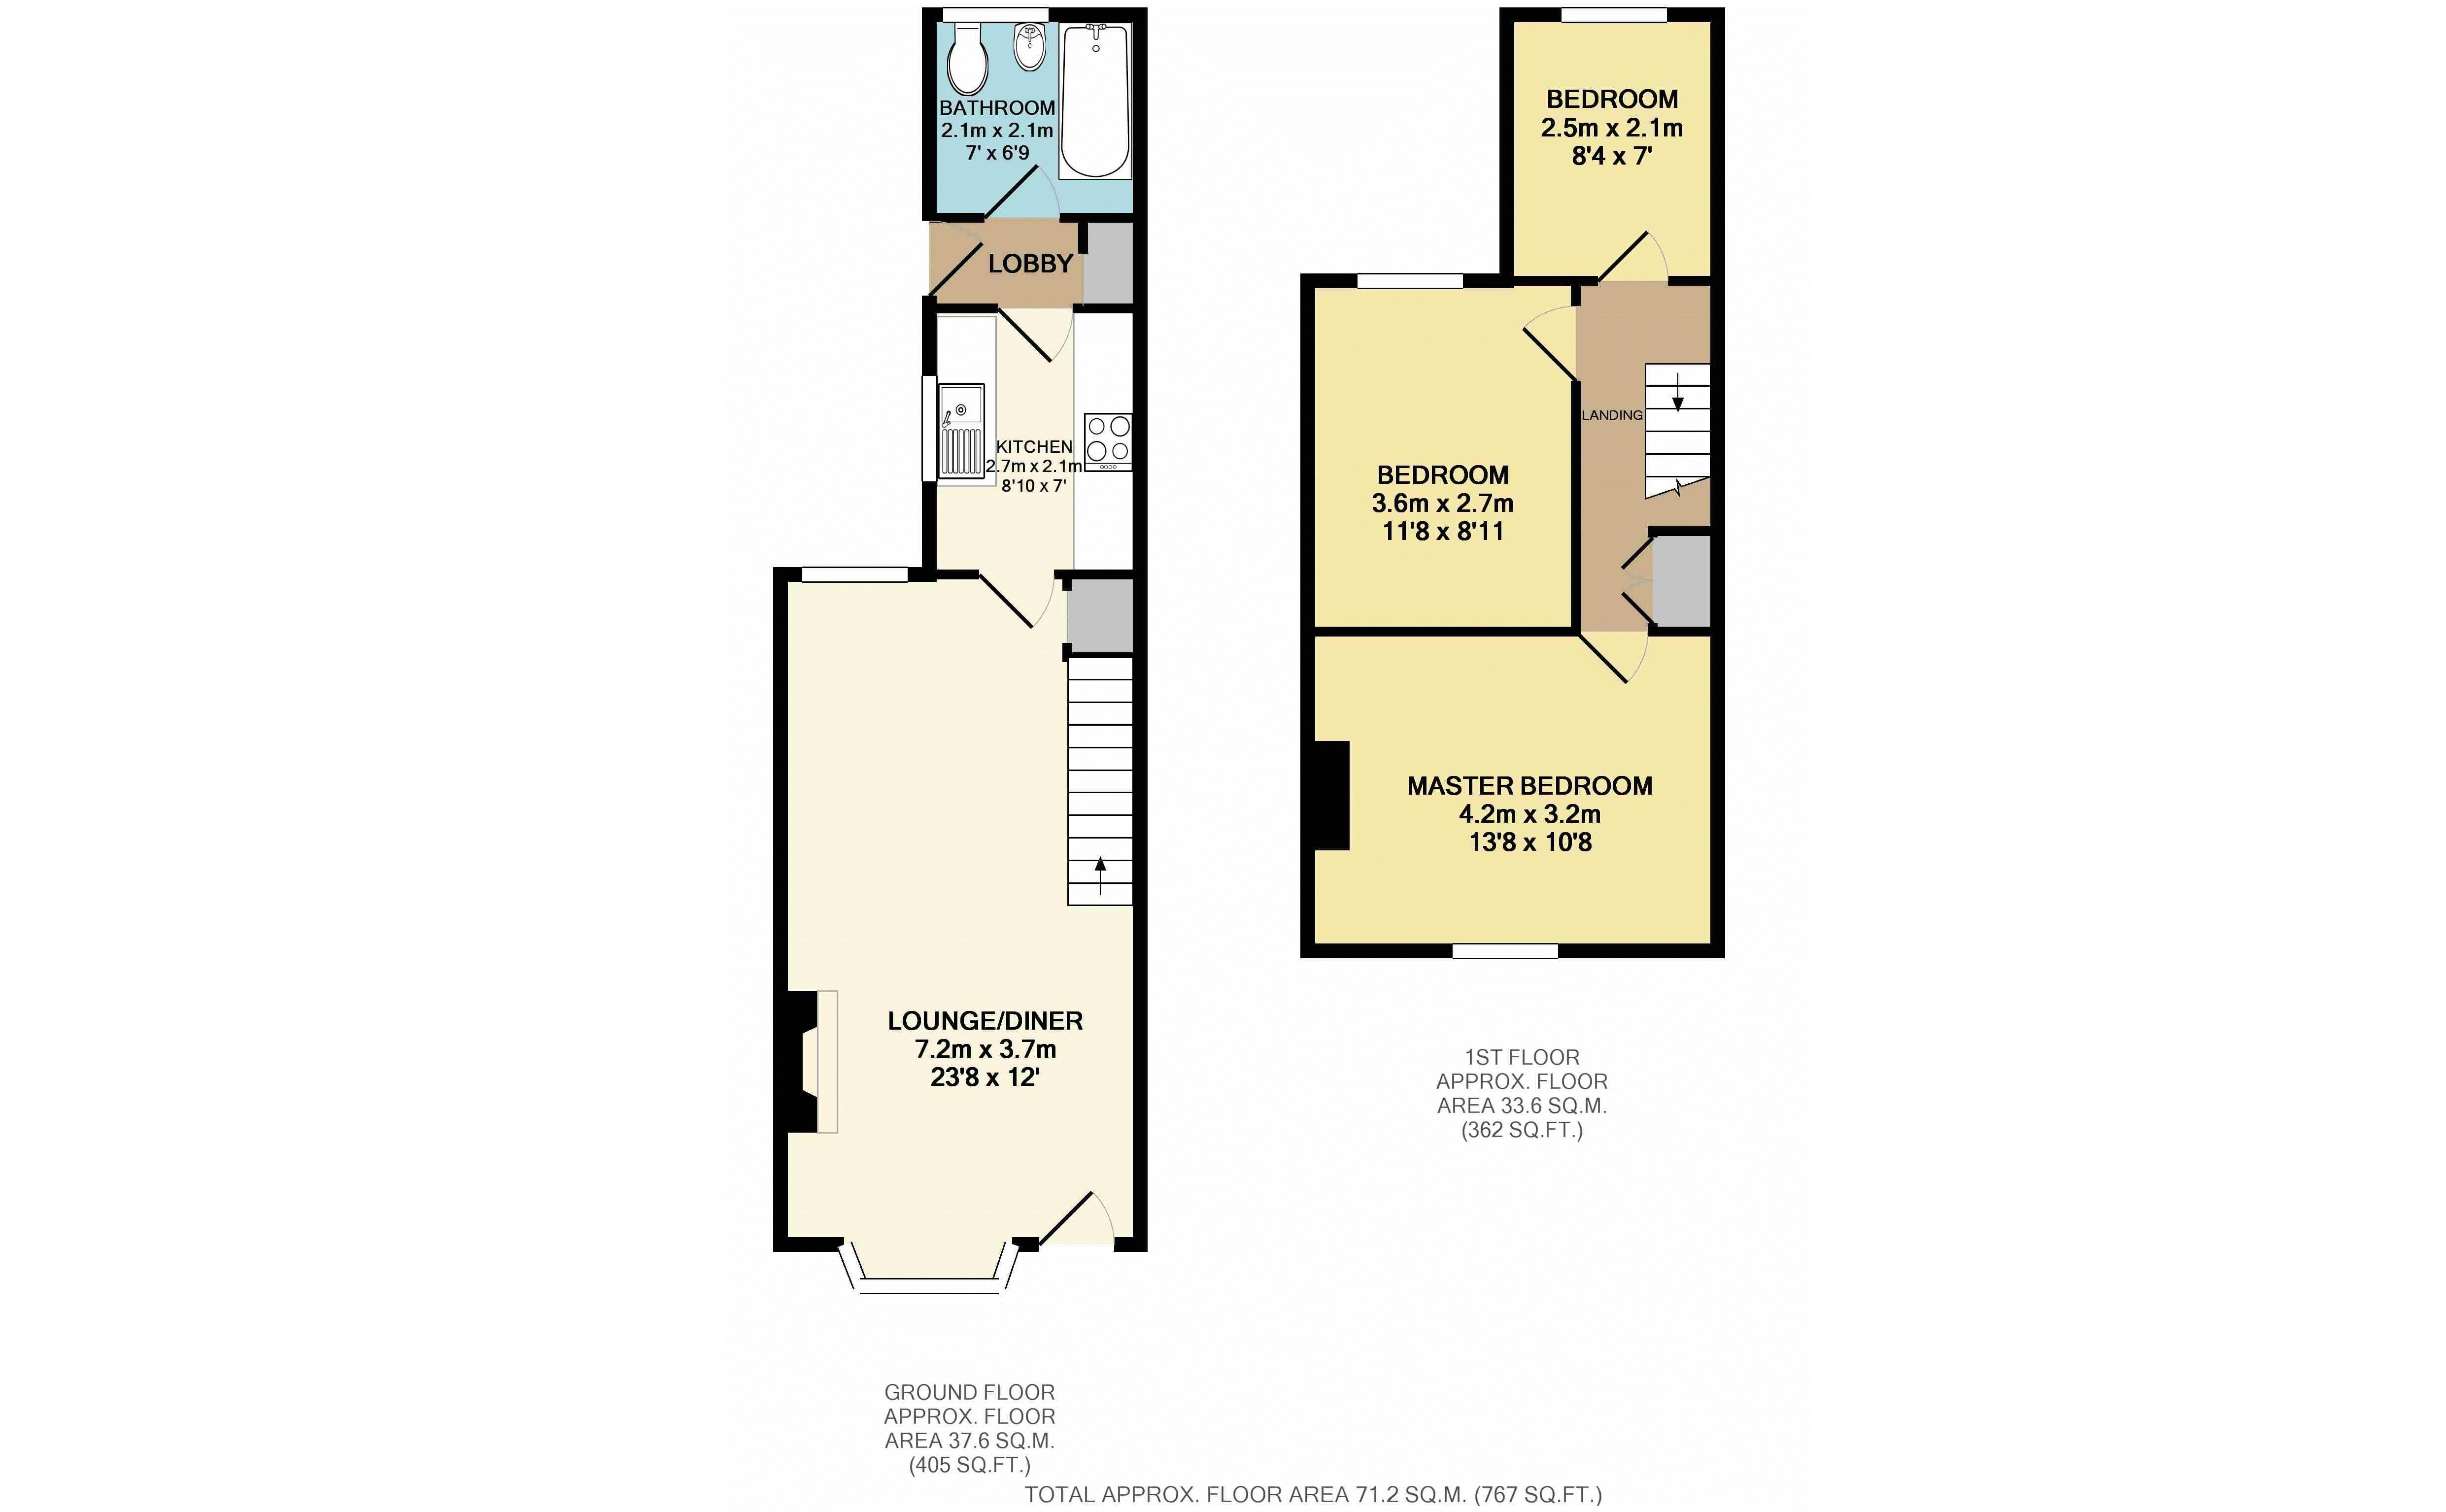 3 bedroom house for sale in leighton buzzard for How much is a bathroom worth on an appraisal